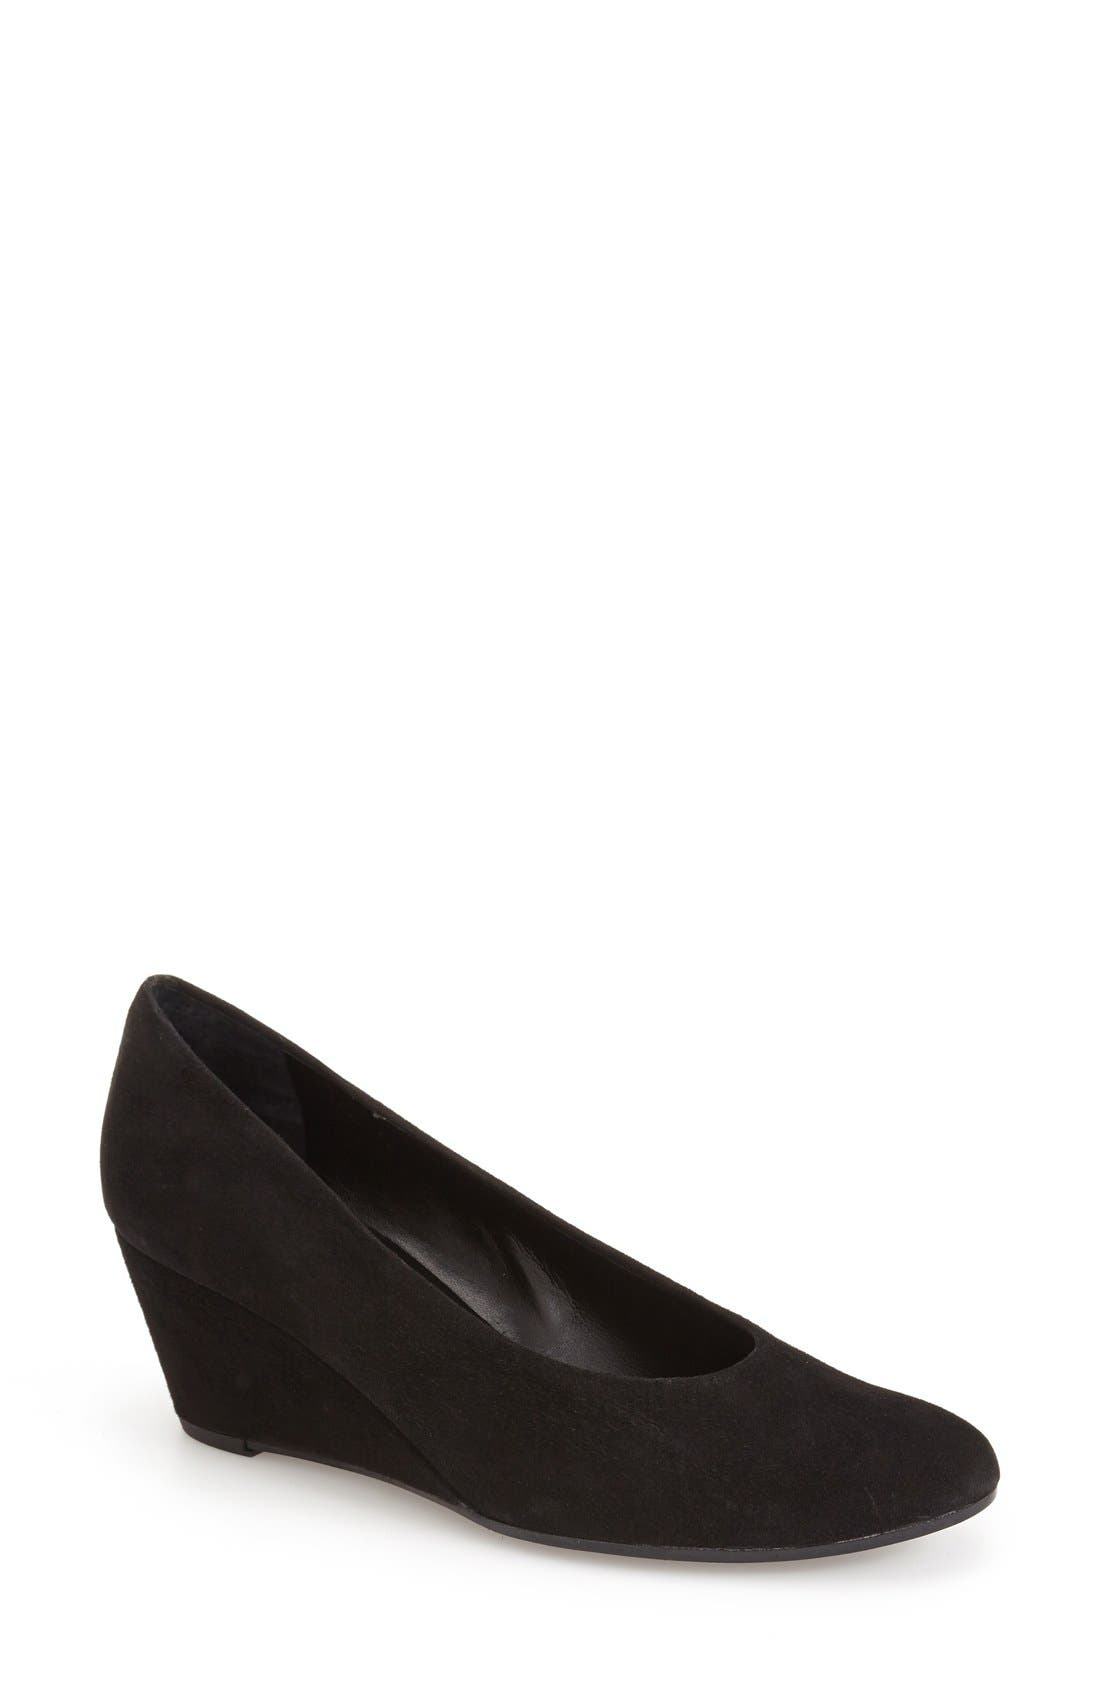 'Dilys' Wedge Pump,                         Main,                         color, BLACK SUEDE